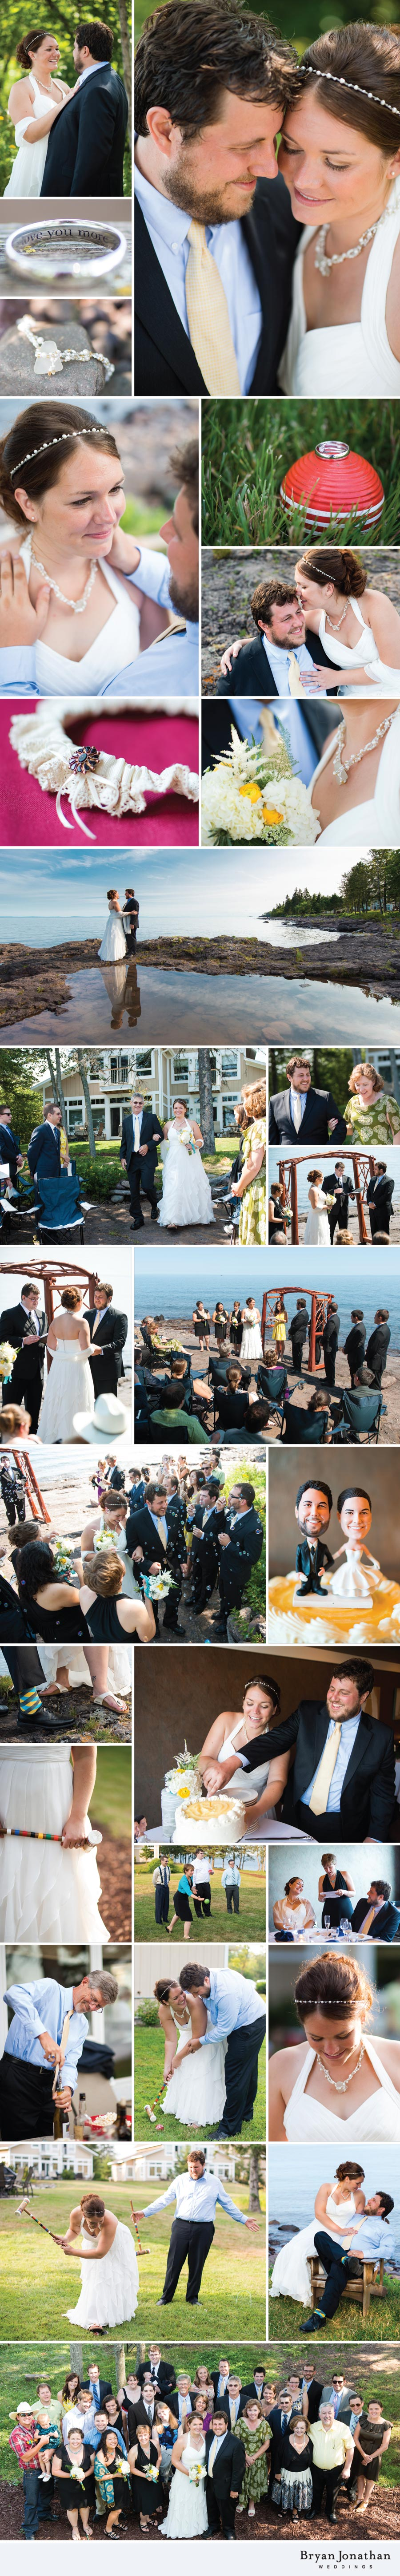 duluth-mn-north-shore-wedding-photographer-bryan-jonathan-weddings